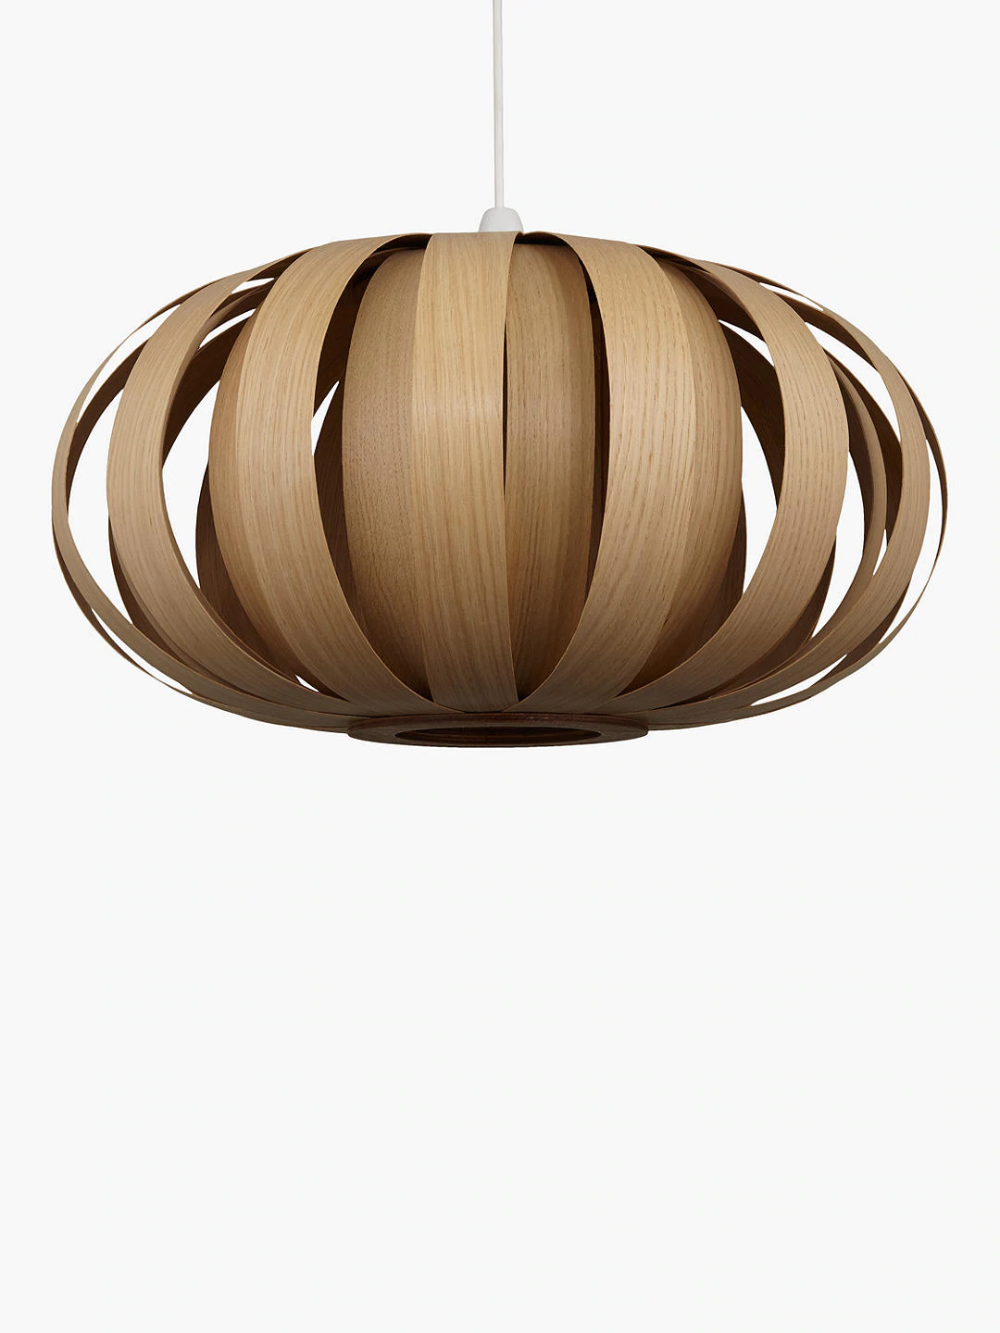 Tom Raffield Urchin Pendant Ceiling Light 53cm Oak Wooden Pendant Lighting Ceiling Pendant Lights Ceiling Lights